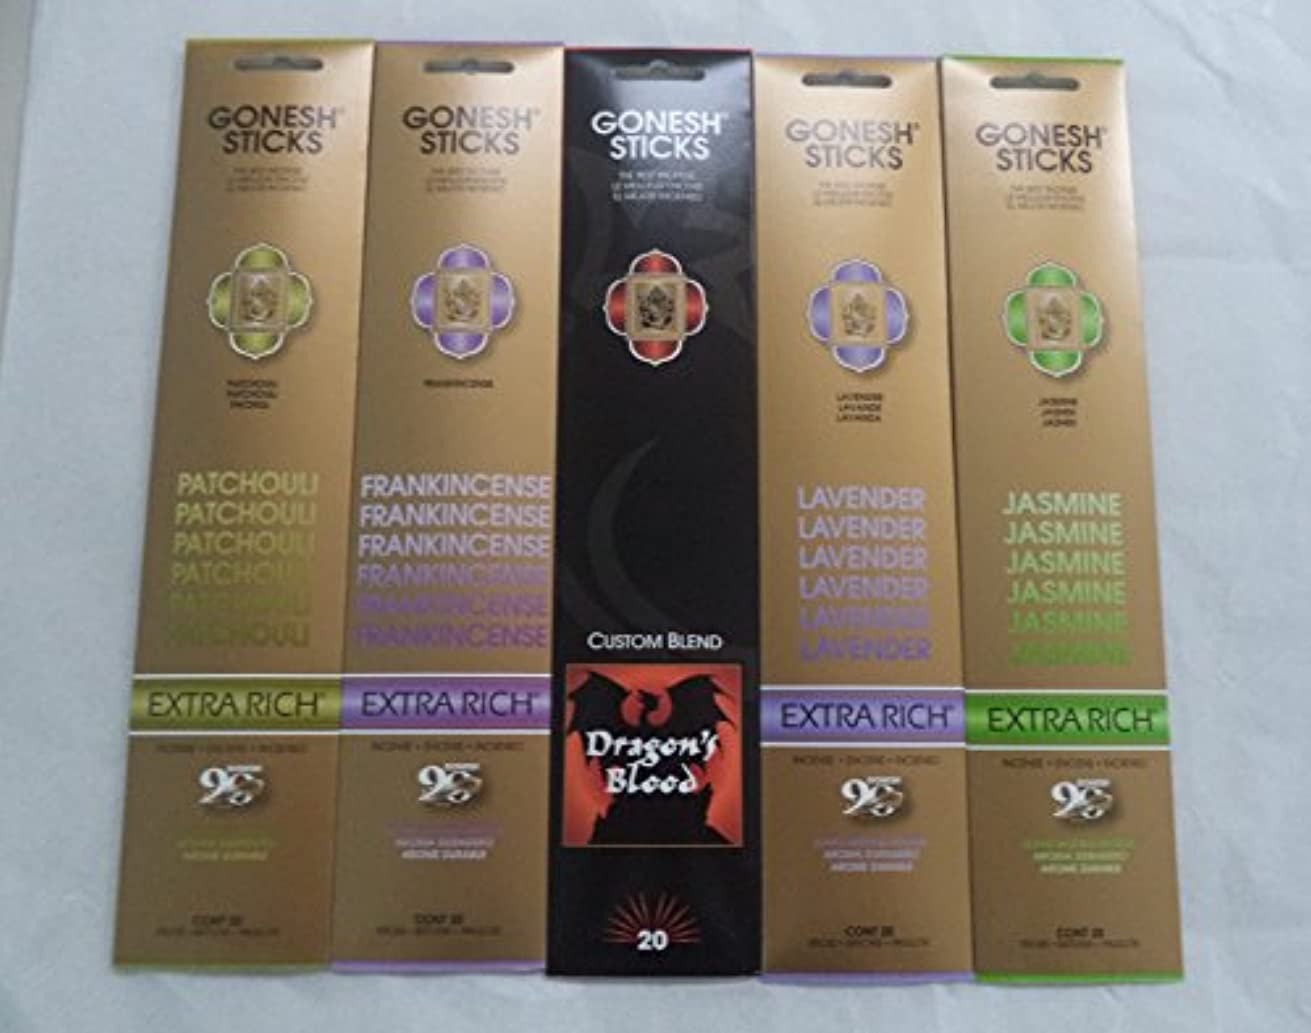 リーガン素人偽善Gonesh Incense Stick Best SellerコンボVariety Set # 1 5 x 20 = 100 Sticks